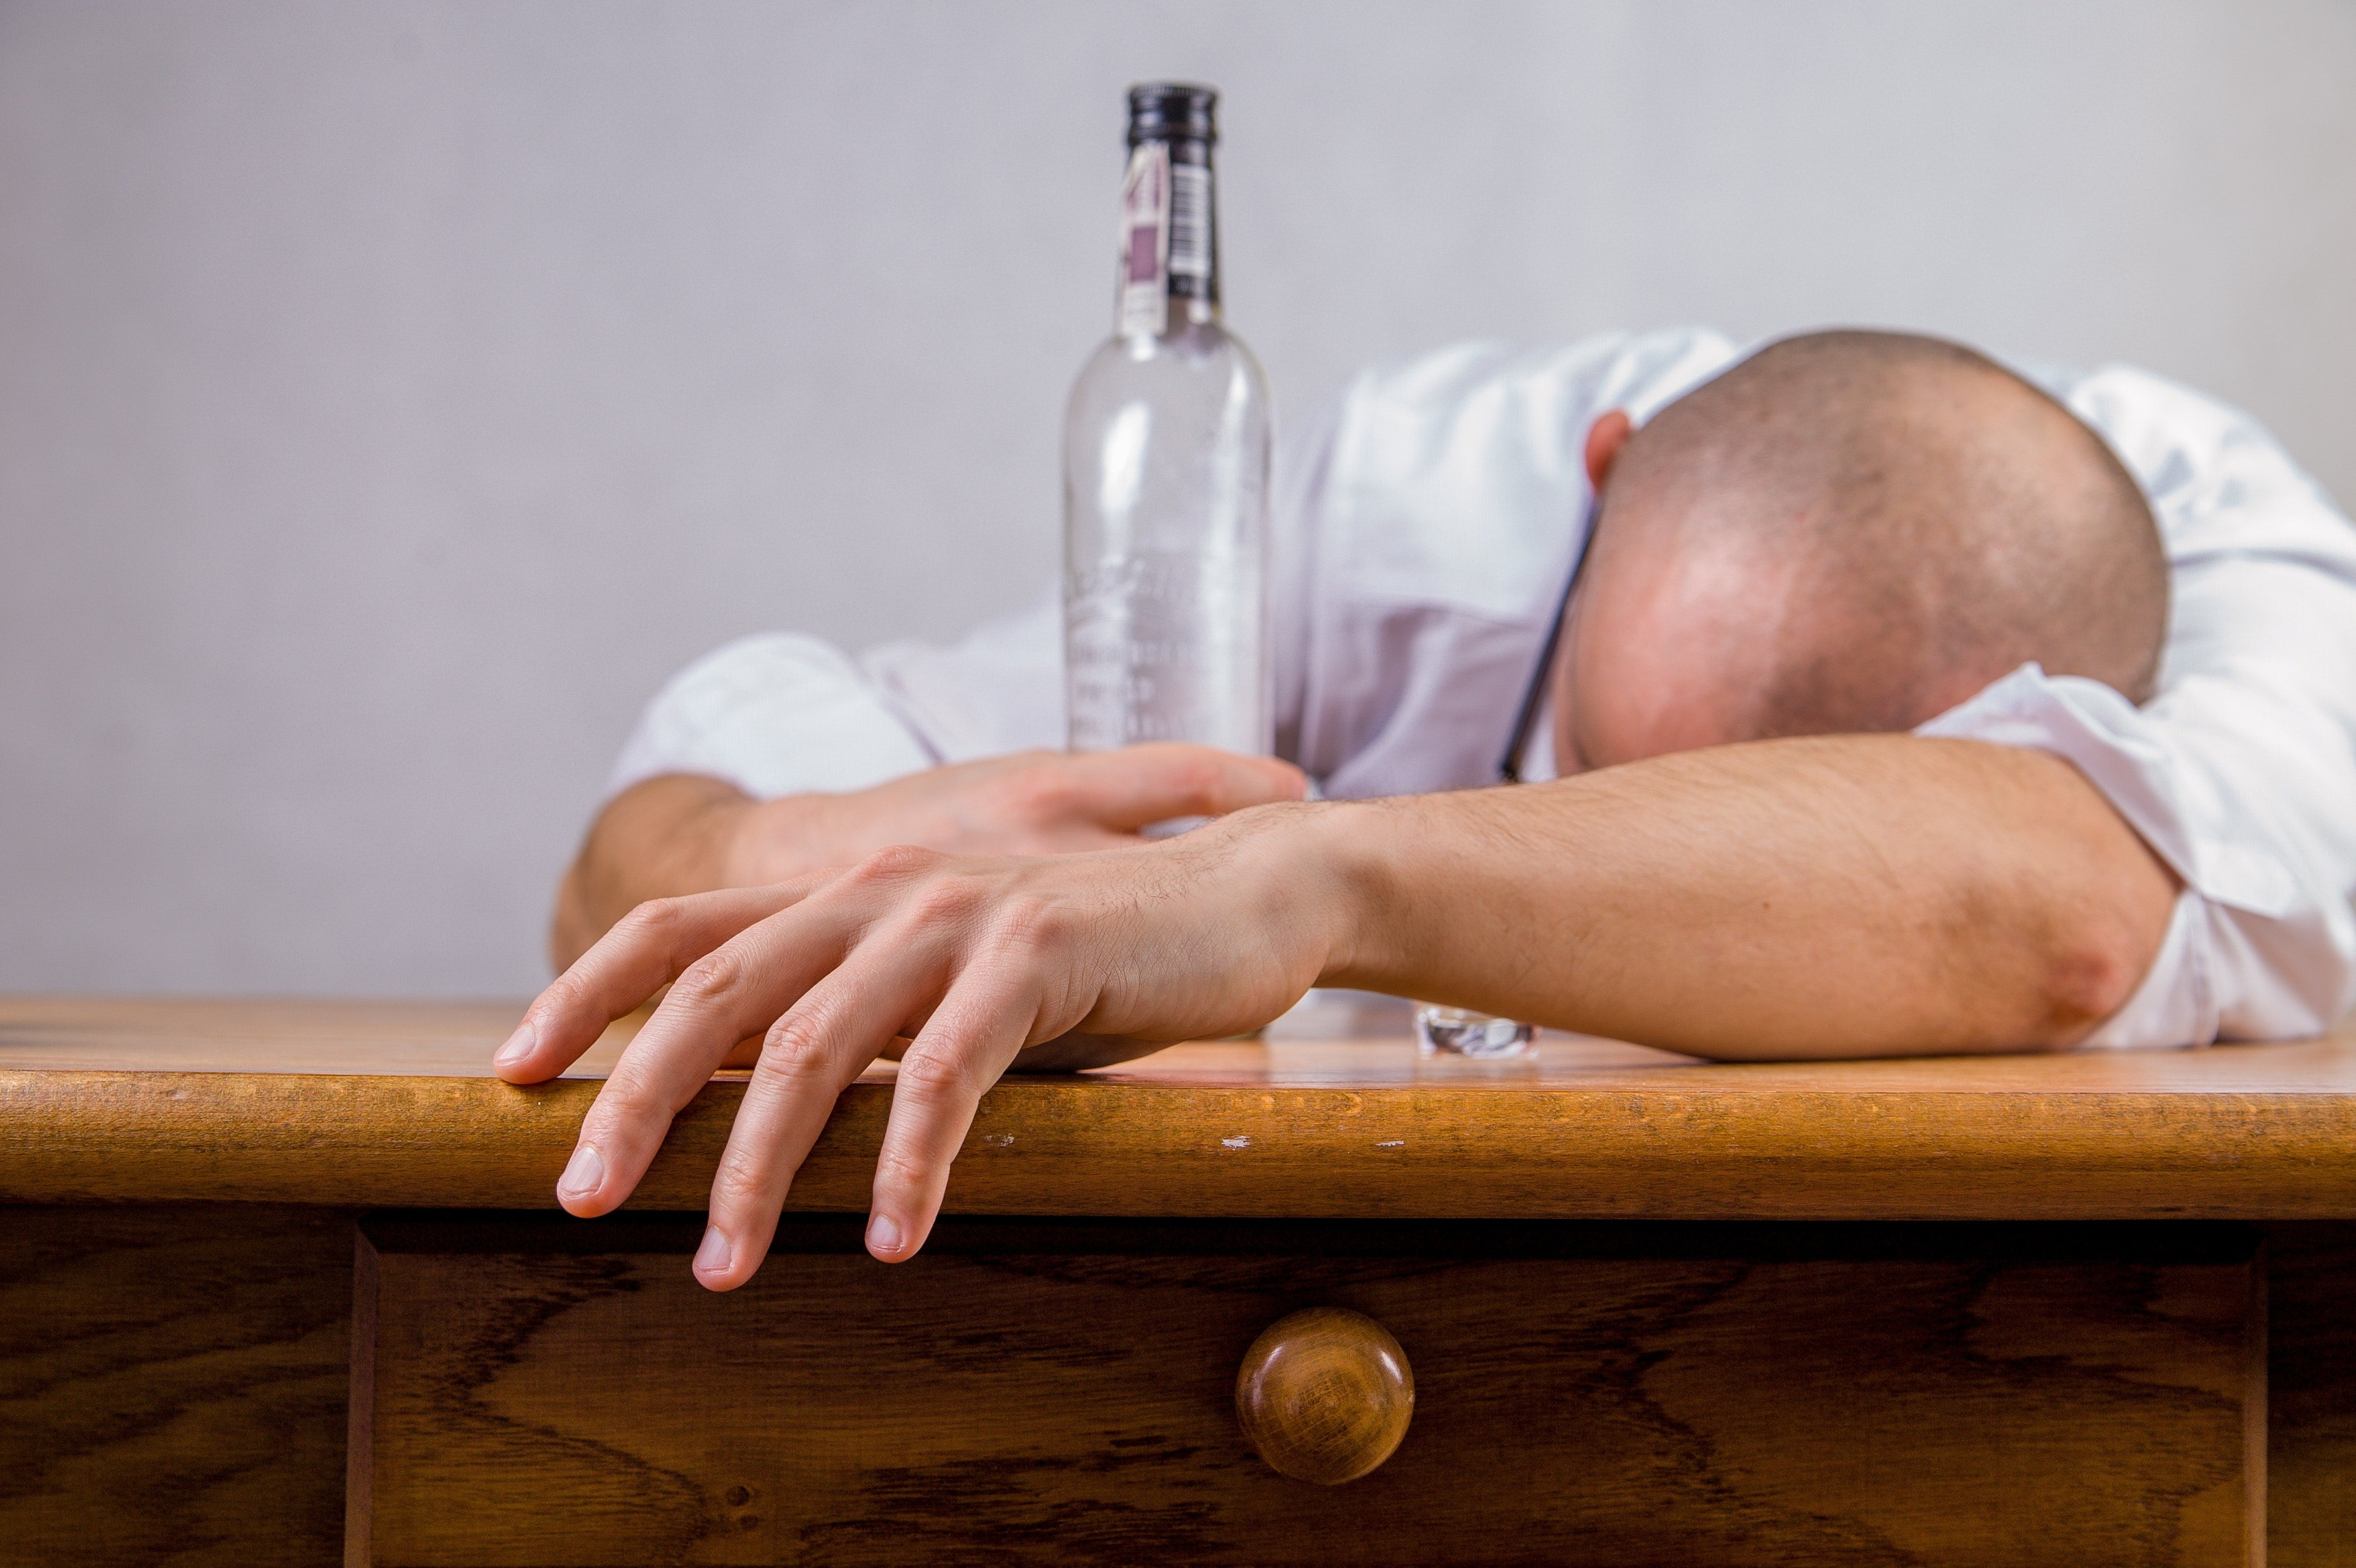 Home Remedies To Treat Hangover